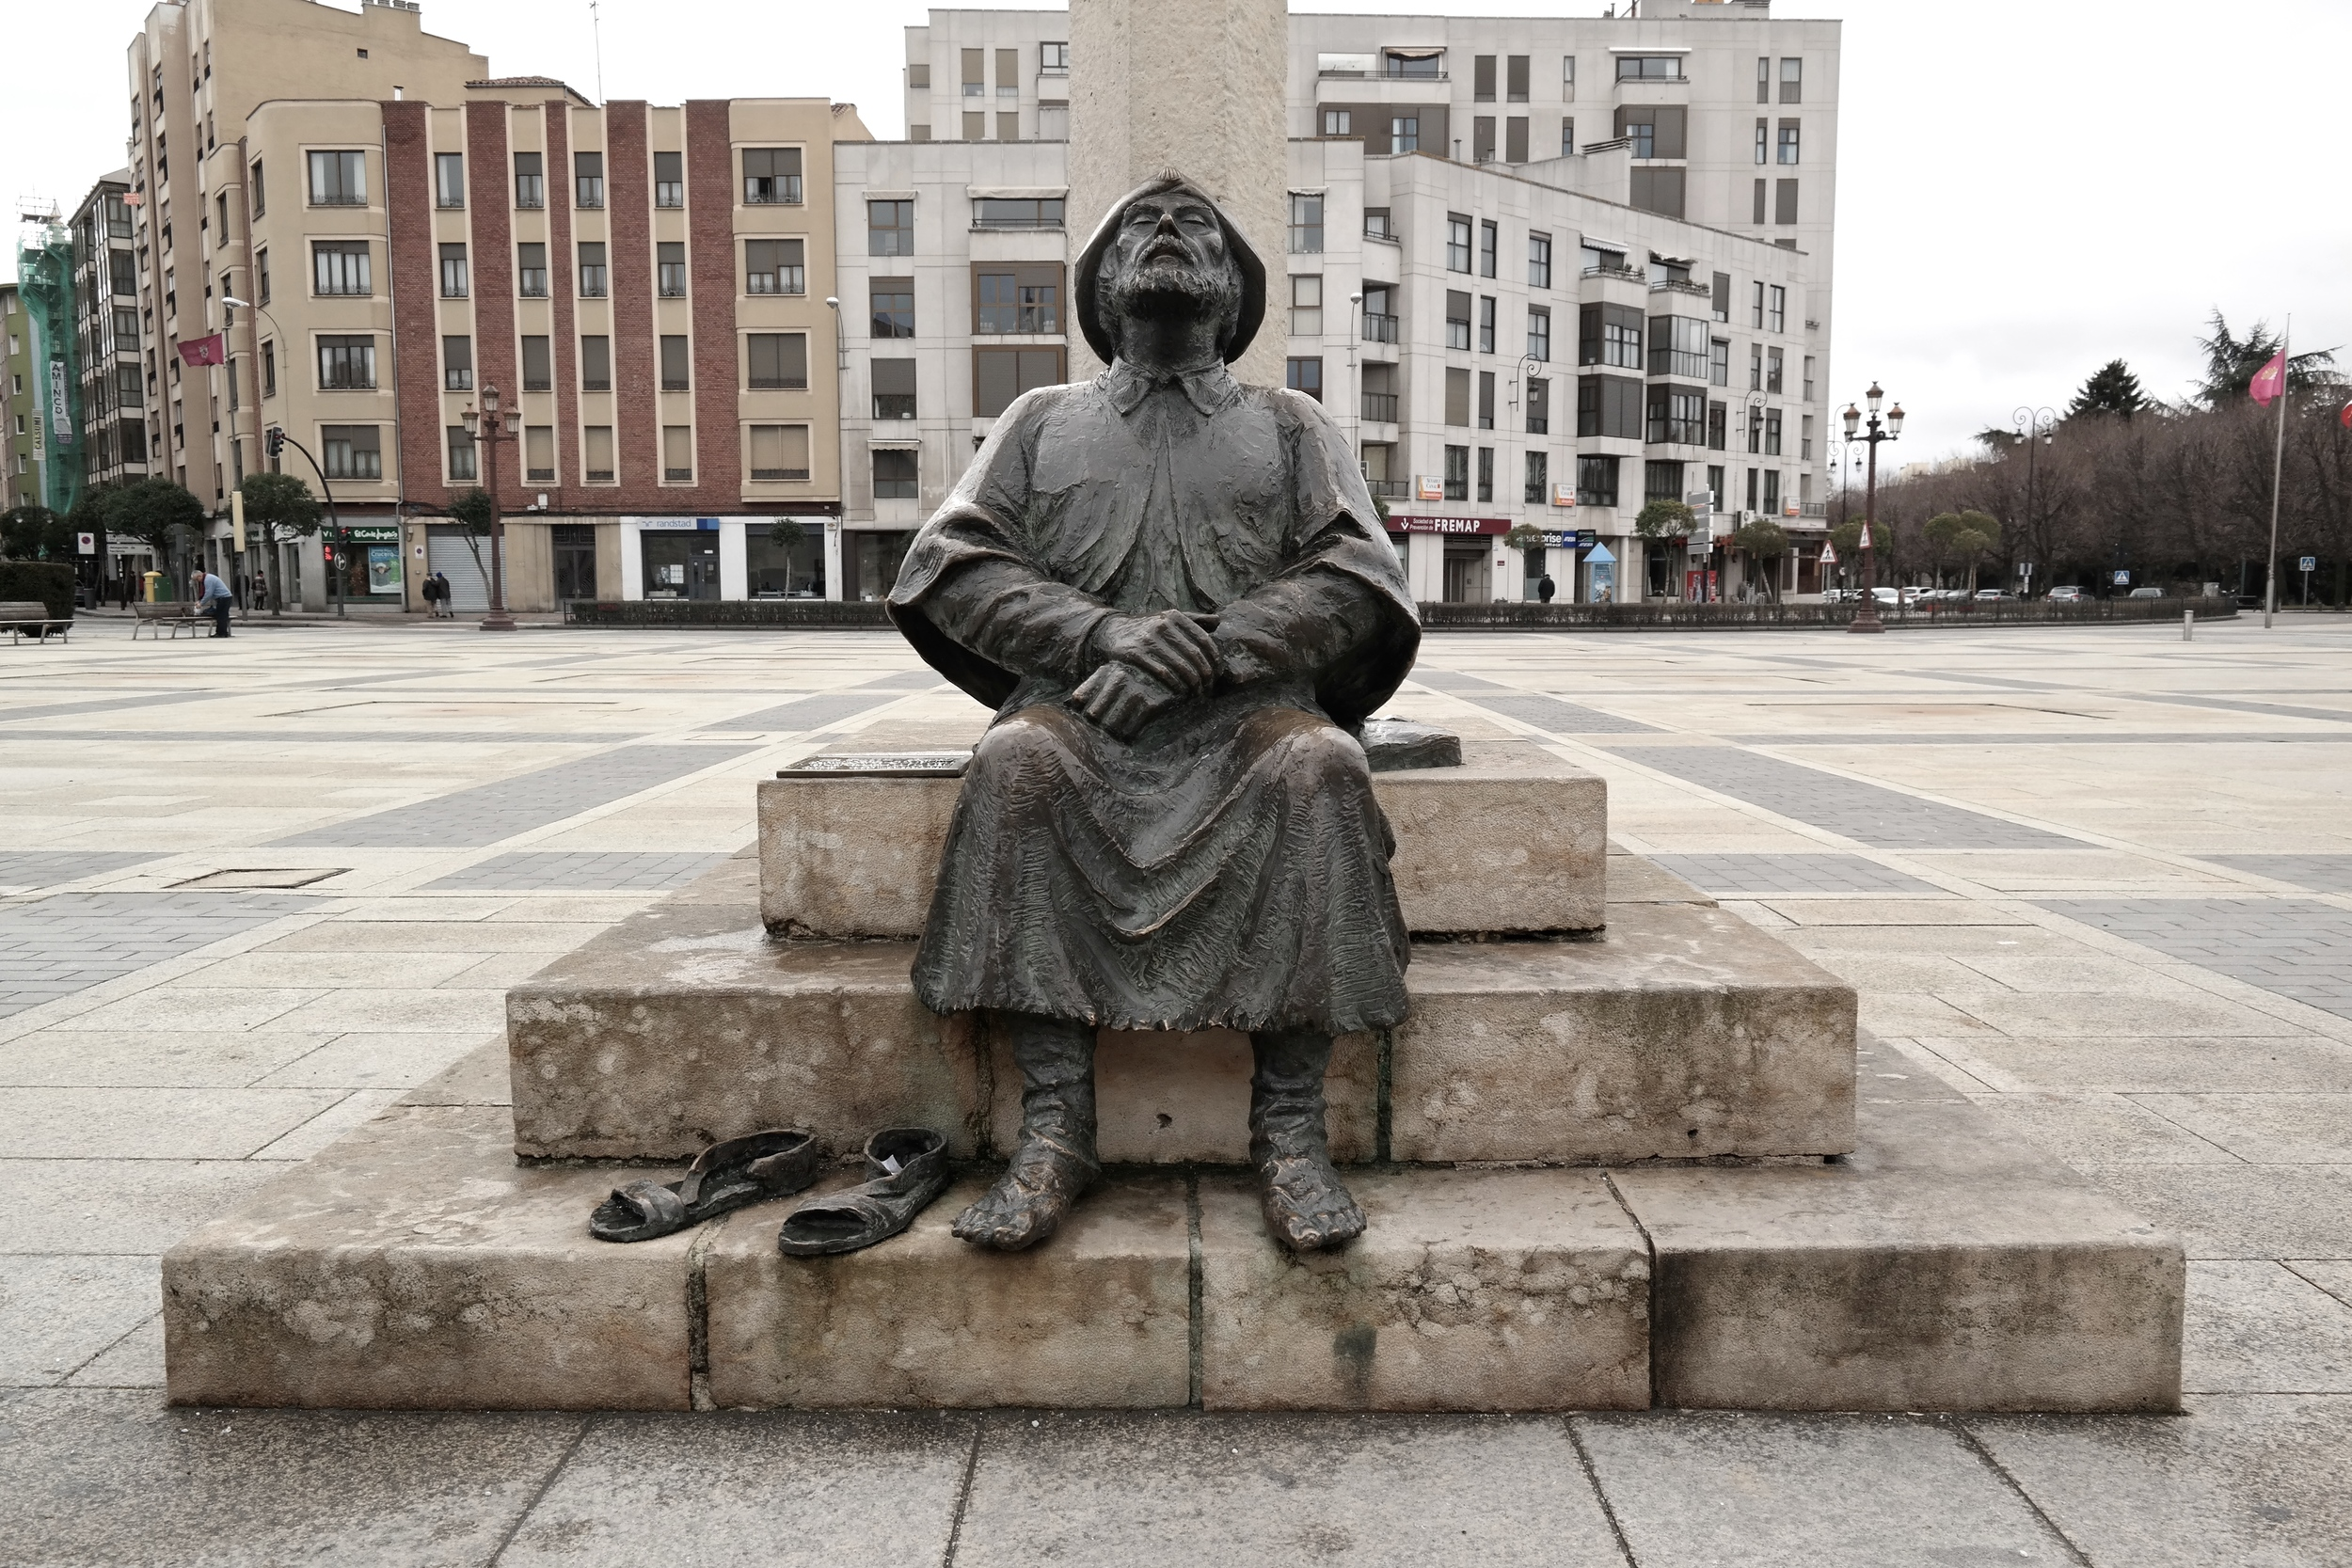 Statue of a weary pilgrim in front of the hotel.